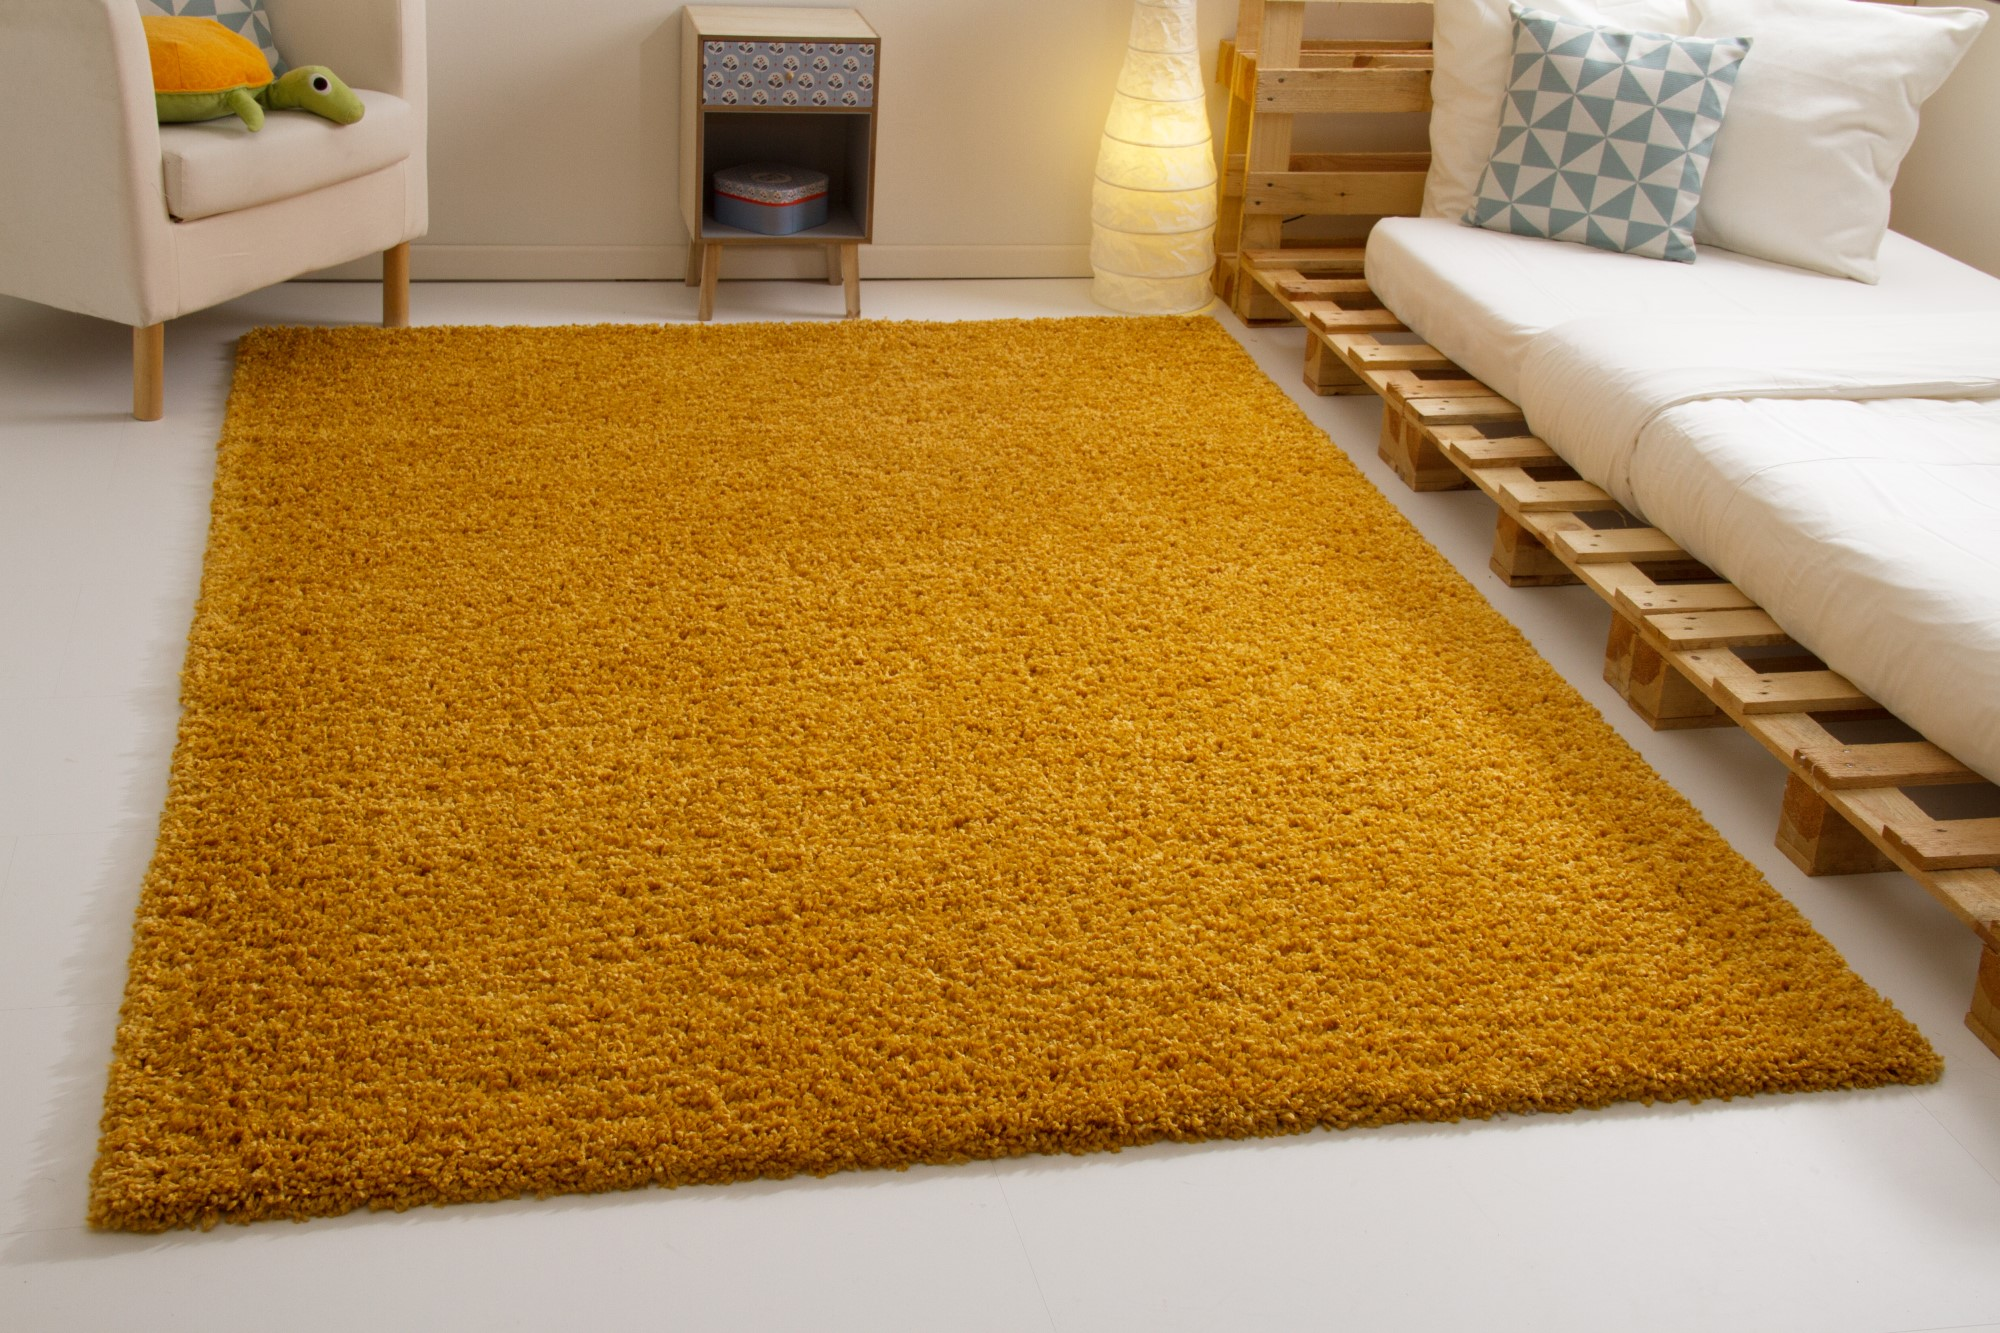 Shaggy Langflor Hochflor Teppich Funny Soft Touch 6 Farben 10